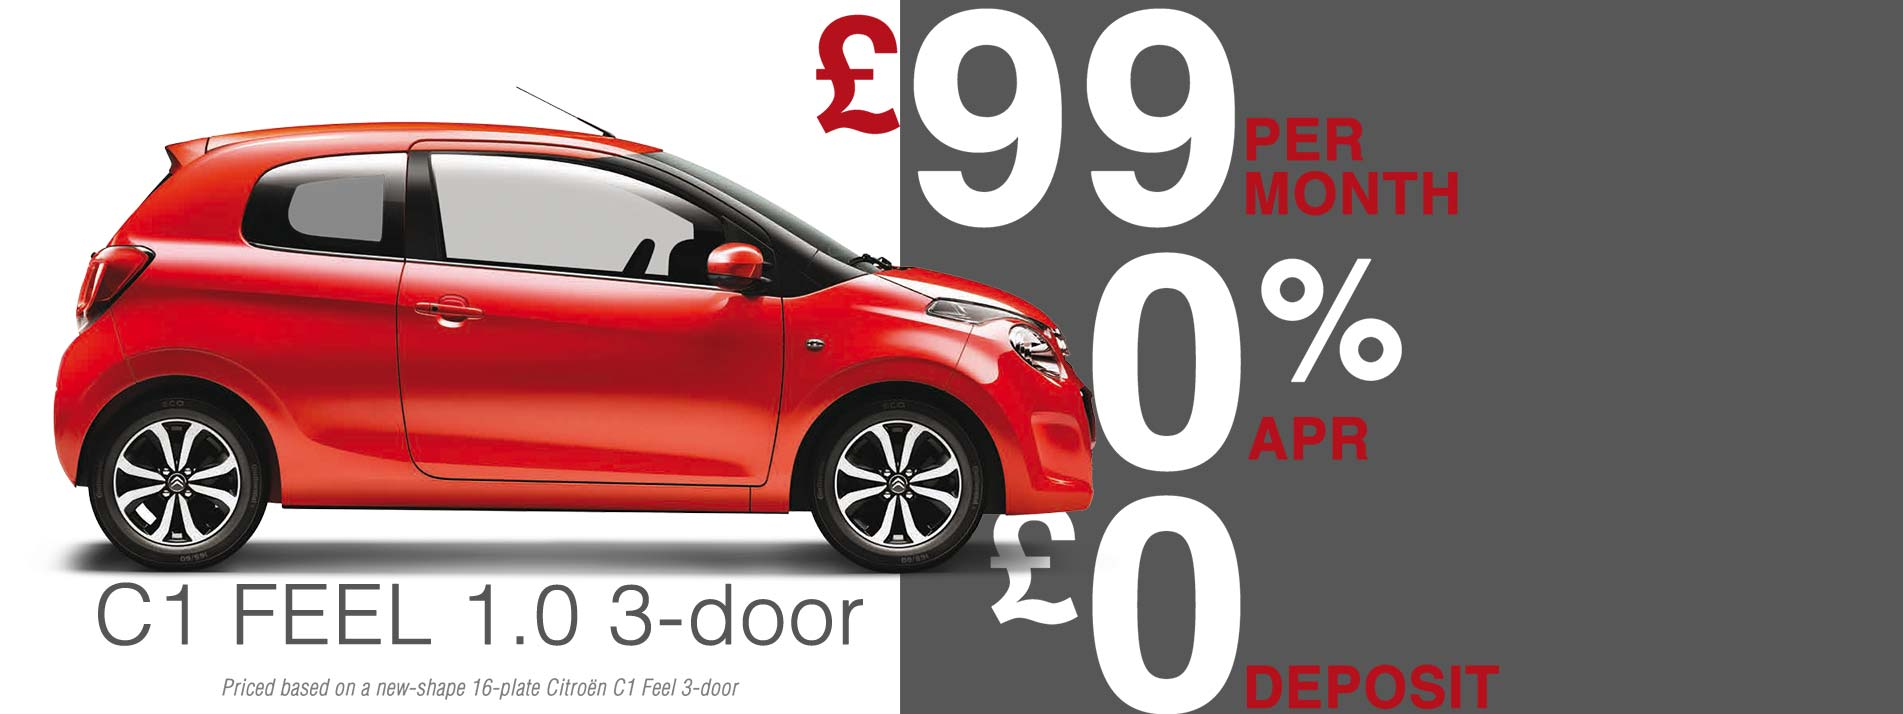 99-pound-car-citroen-c1-feel-affordable-car-finance-m-sli